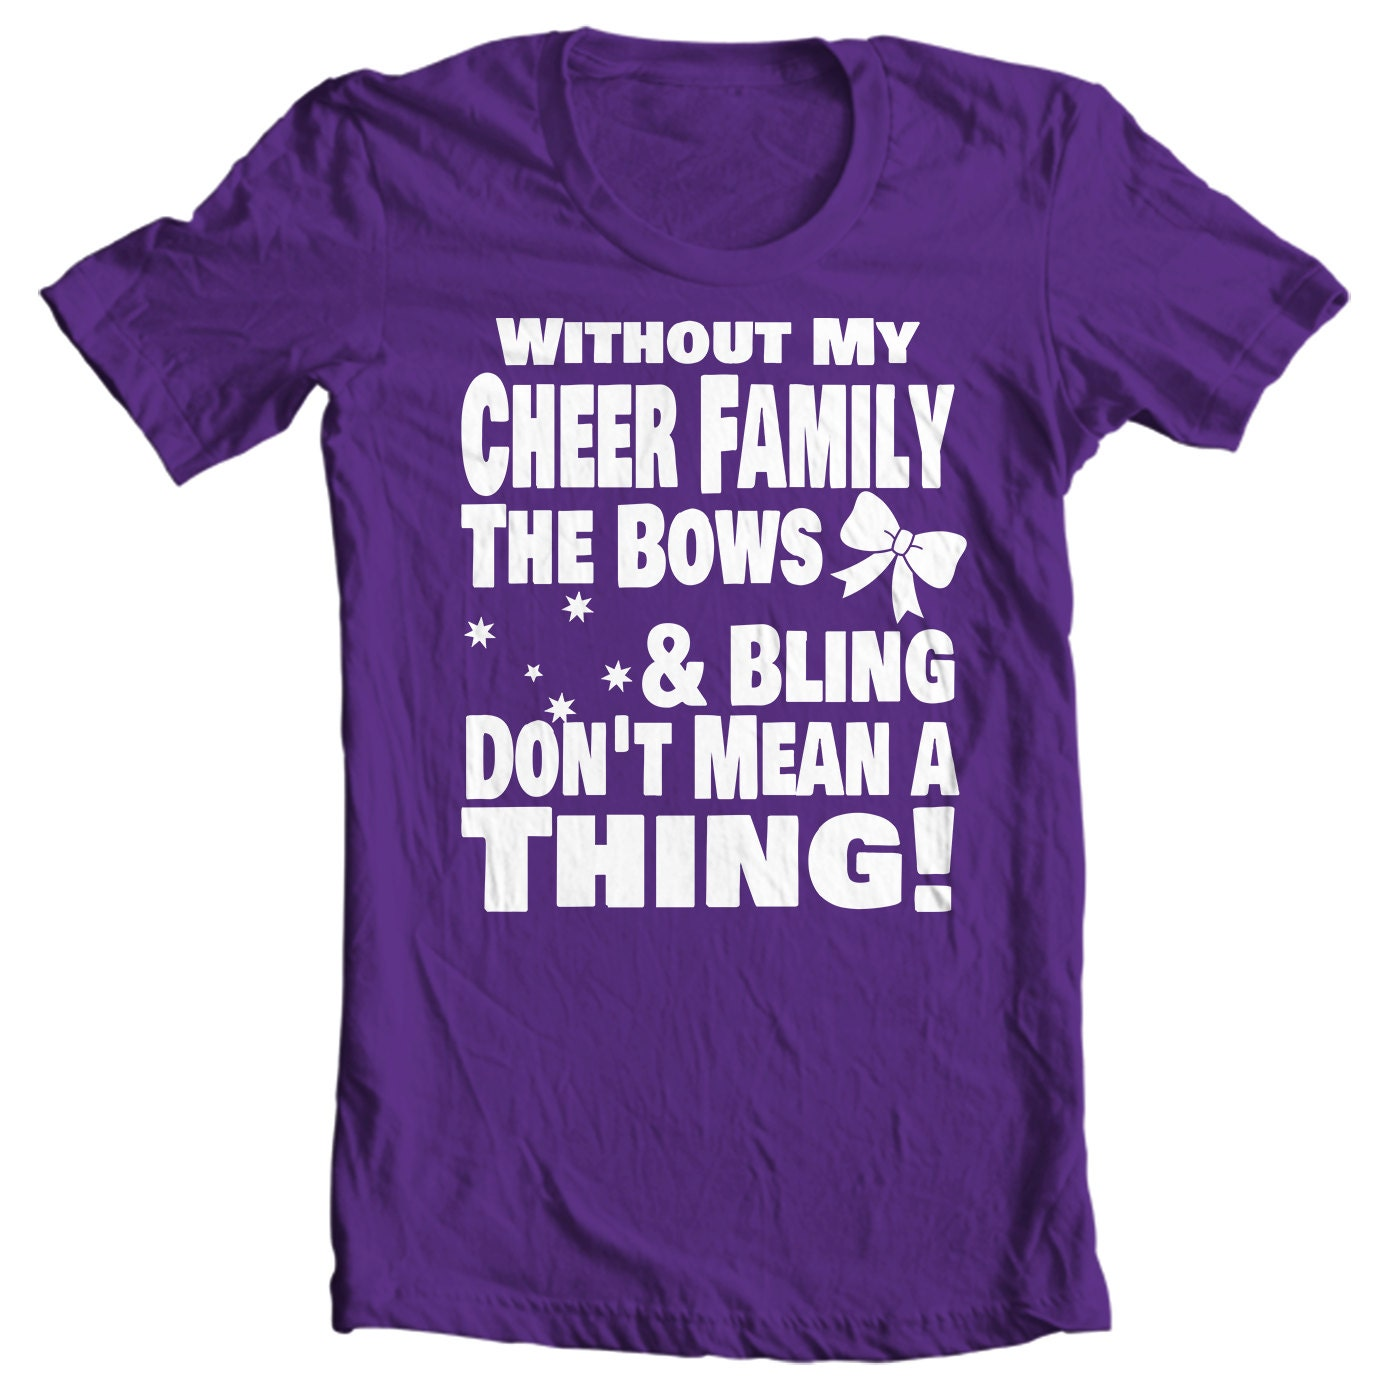 Cheer Life - Without My Cheer Family The Bows And Bling Don't Mean A Thing Adult T-Shirt